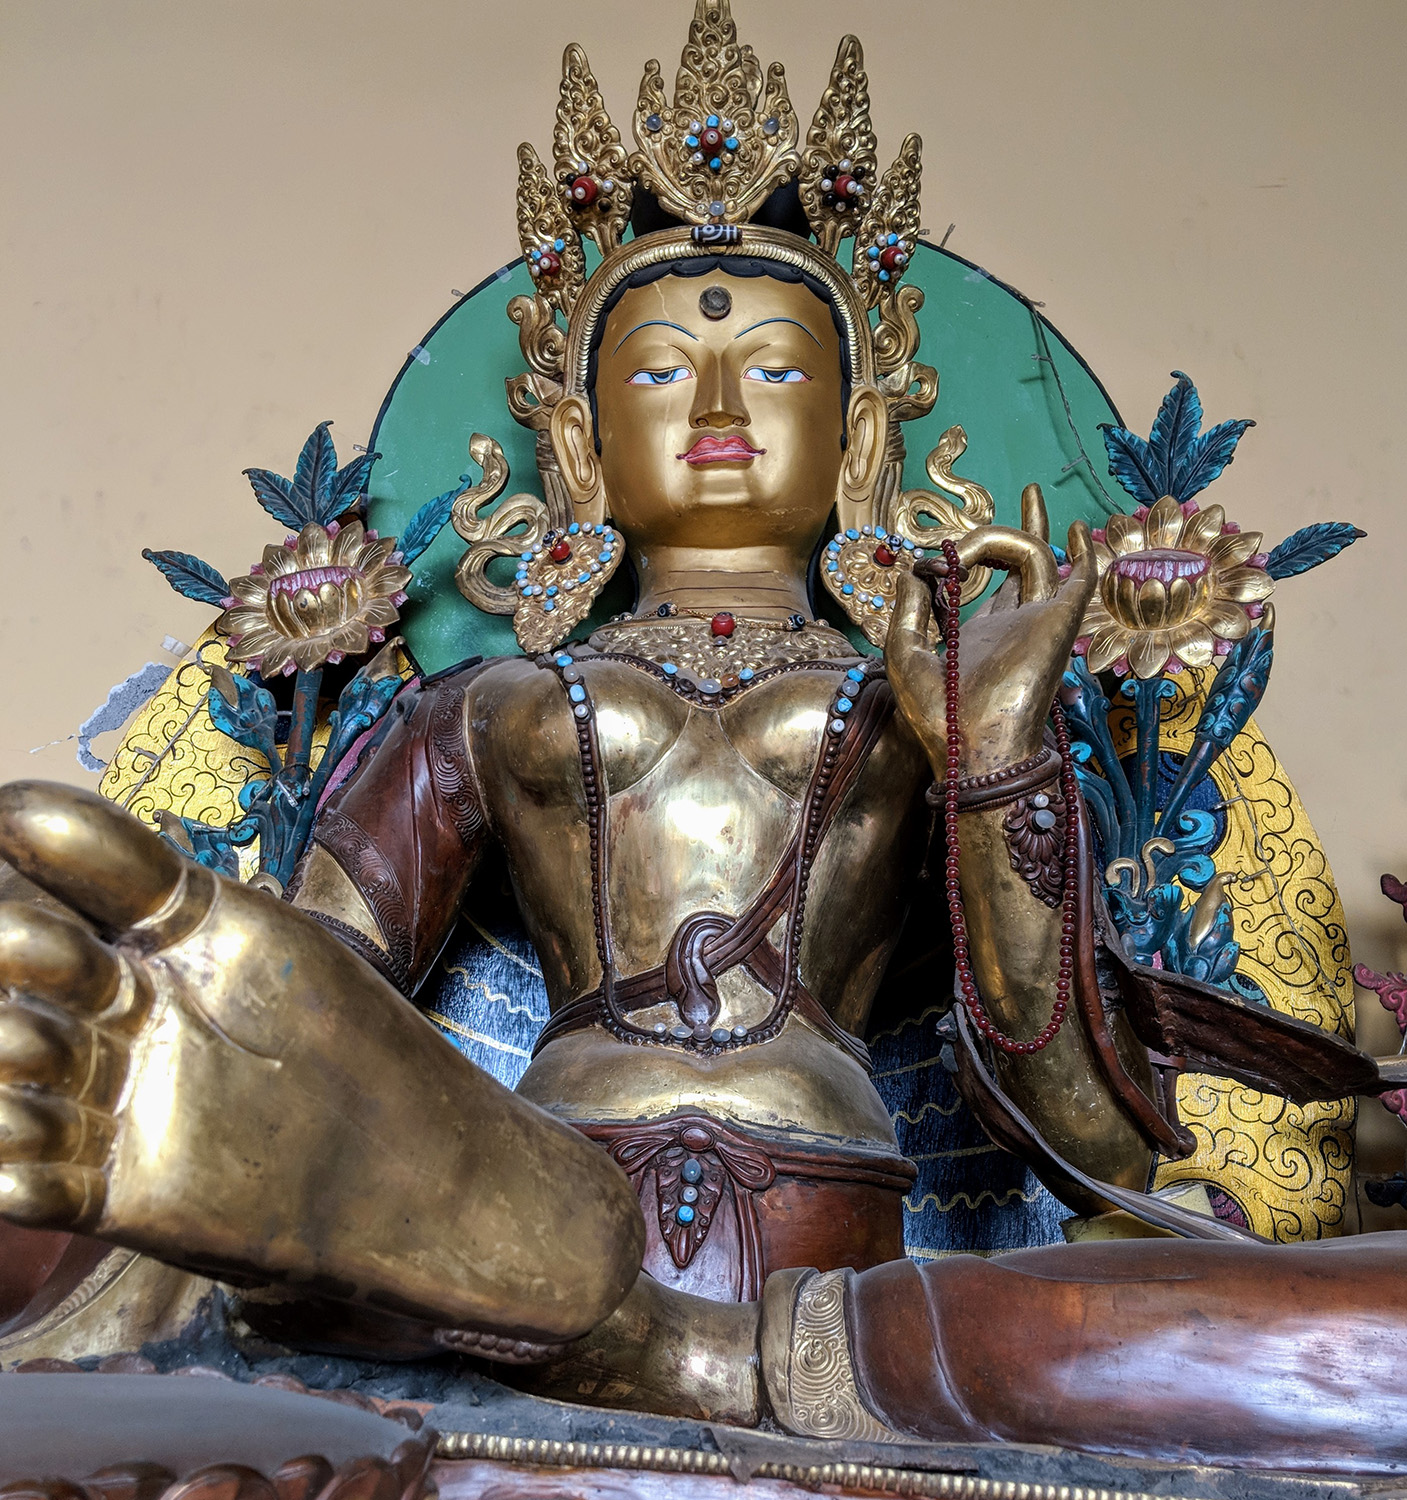 Green Tara of compassion, associated with confronting fear and overcoming obstacles.